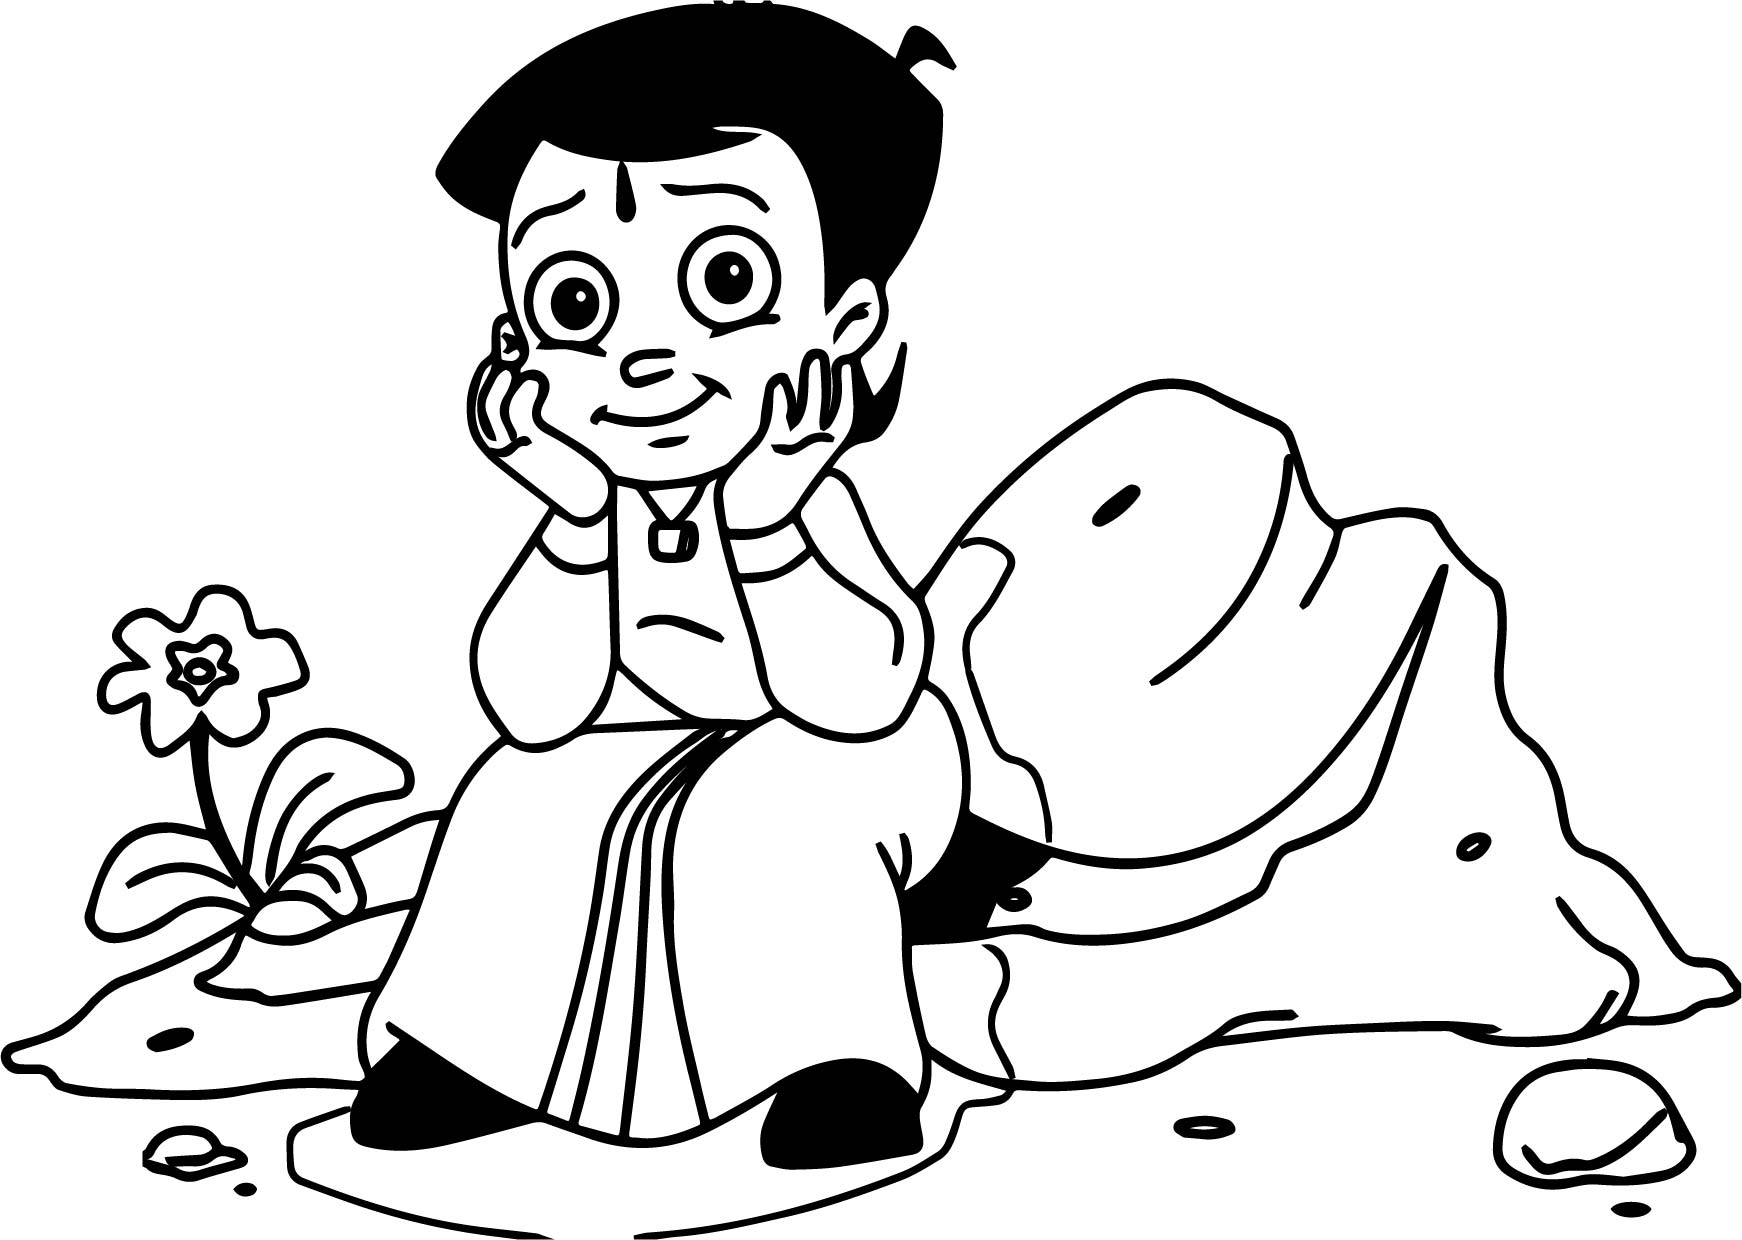 Chhota Bheem Staying Coloring Pages